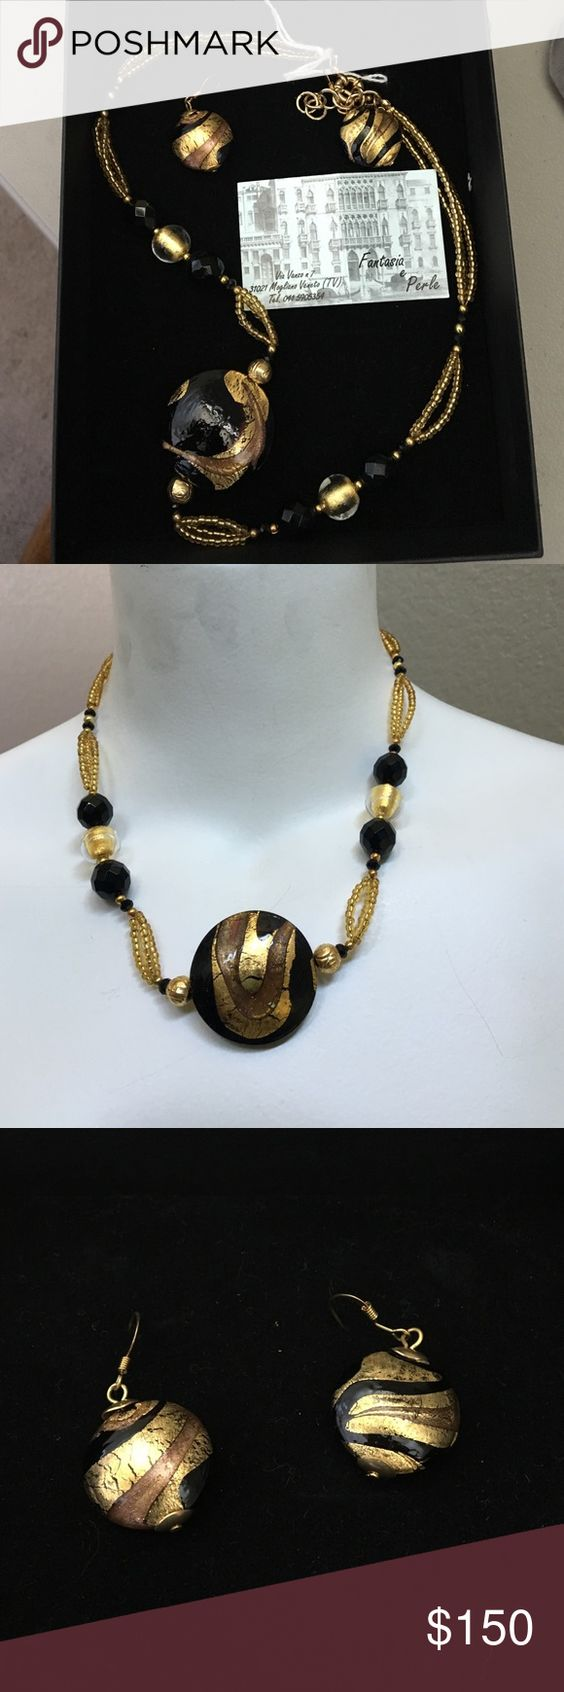 """Italian glass jewelry set Beautiful black and gold set made from Murano glass, purchased in Italy. Comes with certificate of origin from Fantasia e Perle. Earrings are for pierced ears and necklace is 20"""" circumference. Fantasia e Perle  Jewelry Necklaces"""